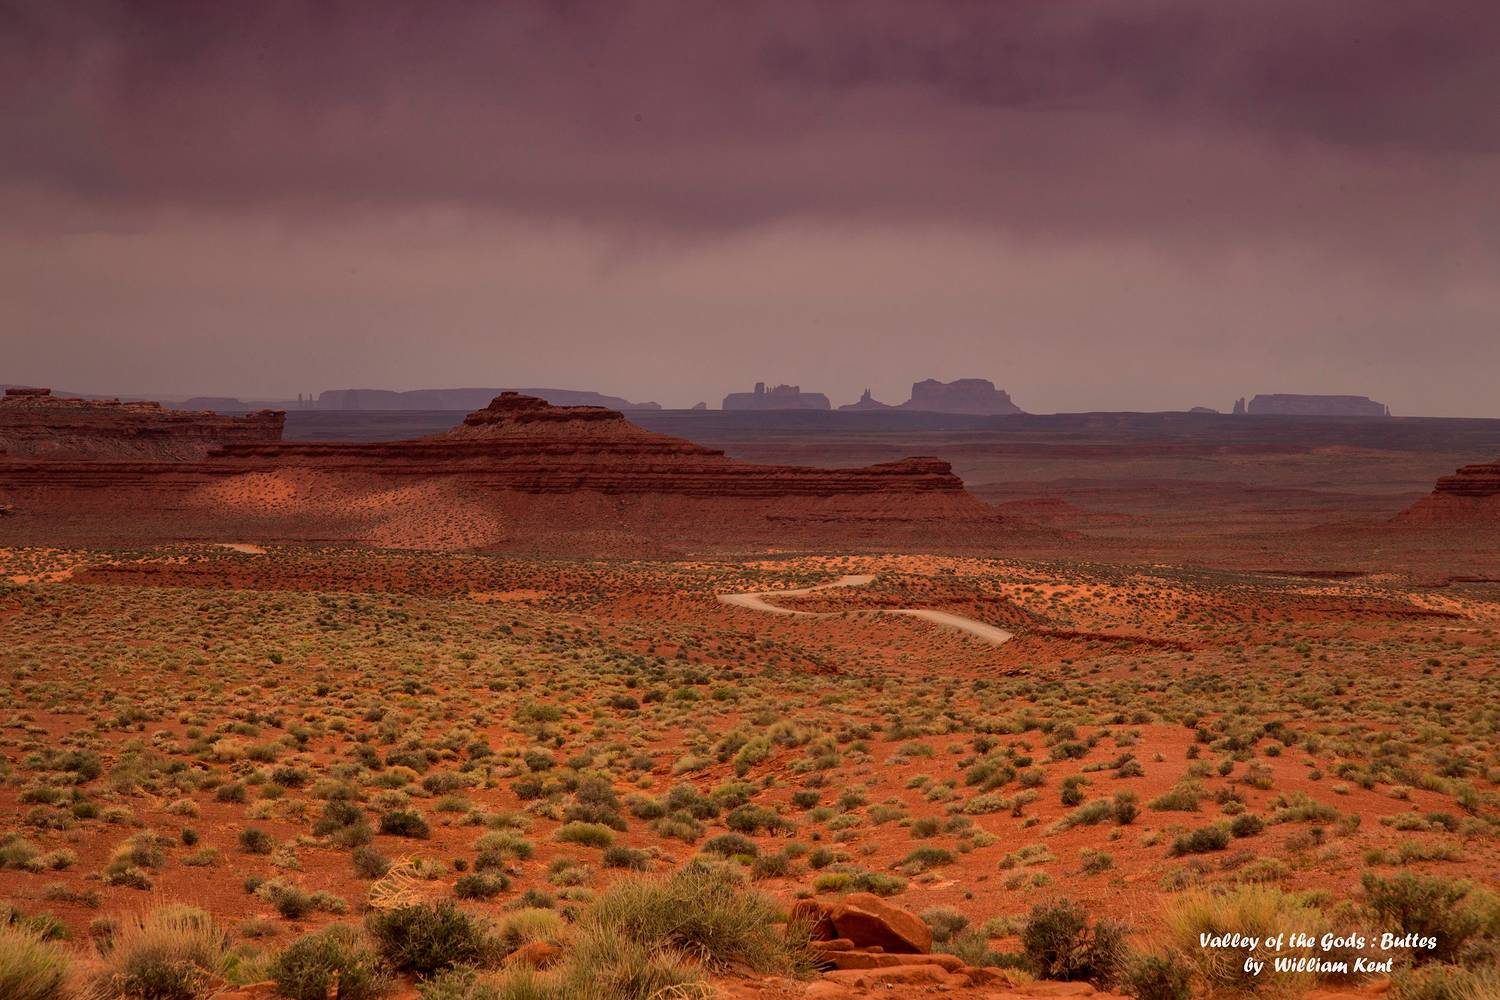 Valley of the Gods _ Buttes on Horizon by William Kent